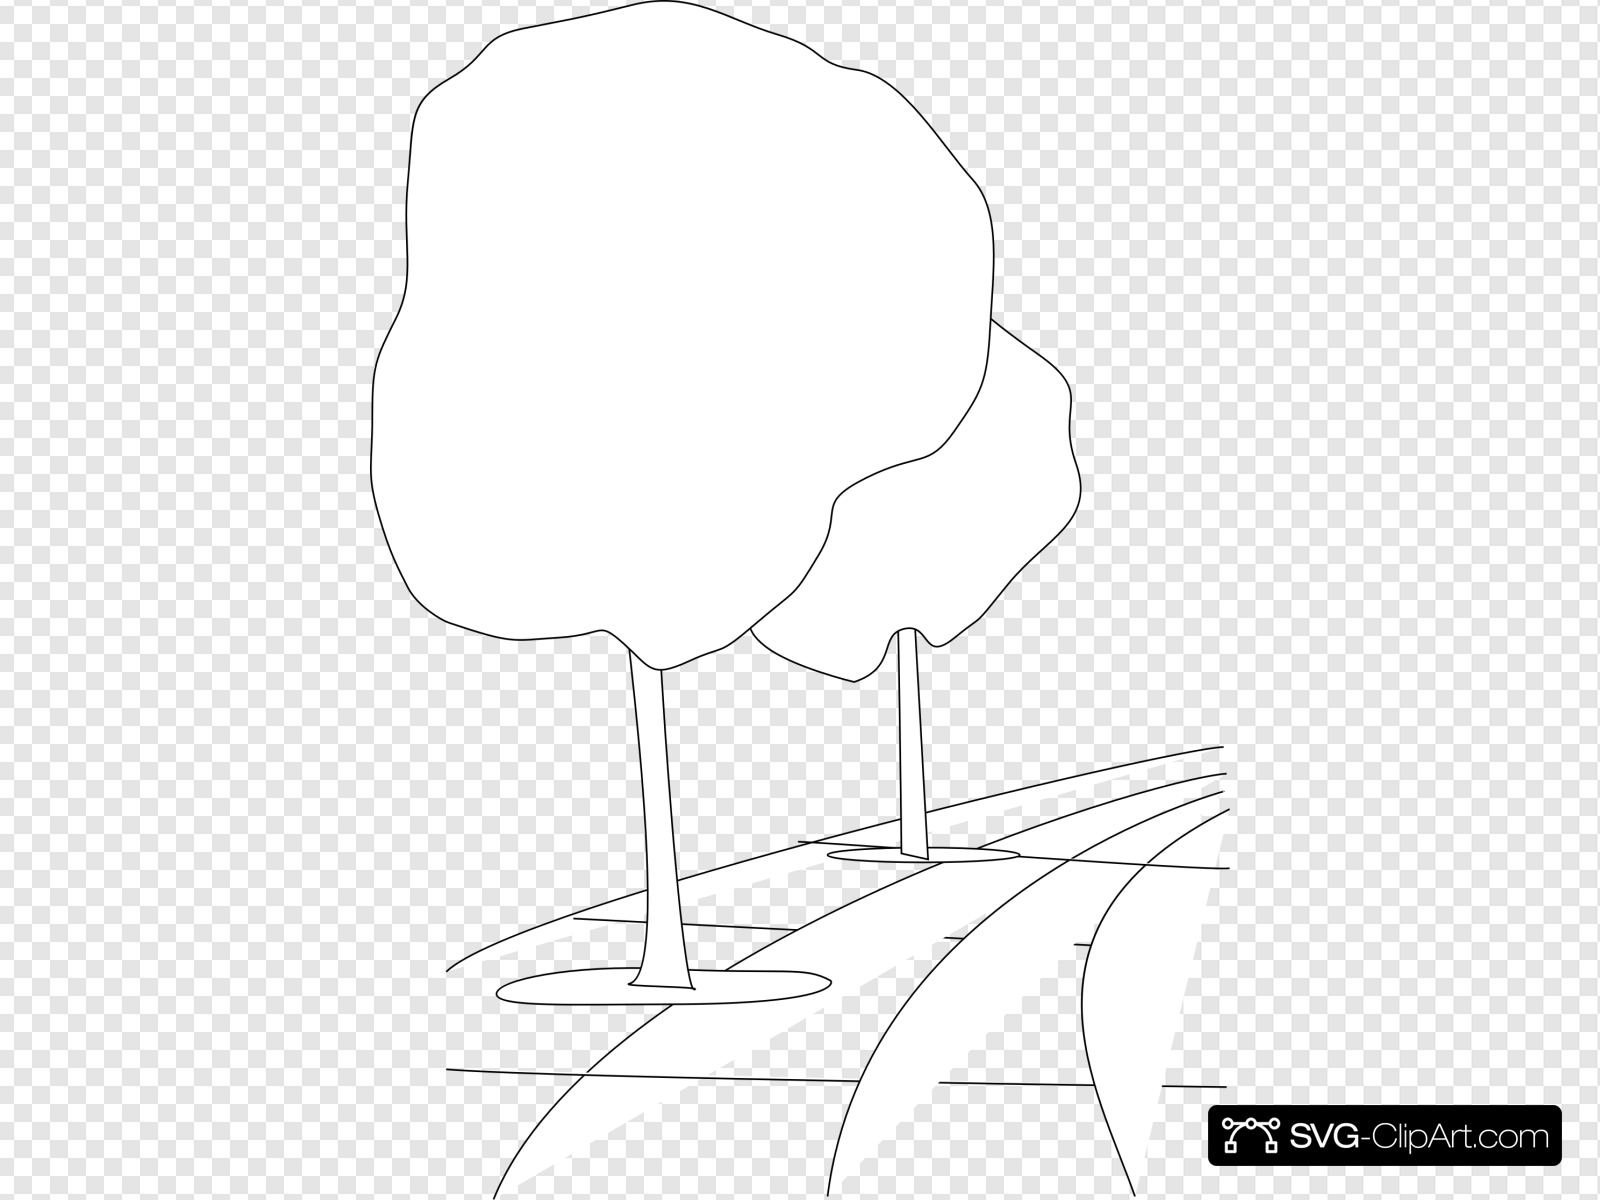 Pavement Street Trees Outline 3d Clip art, Icon and SVG.